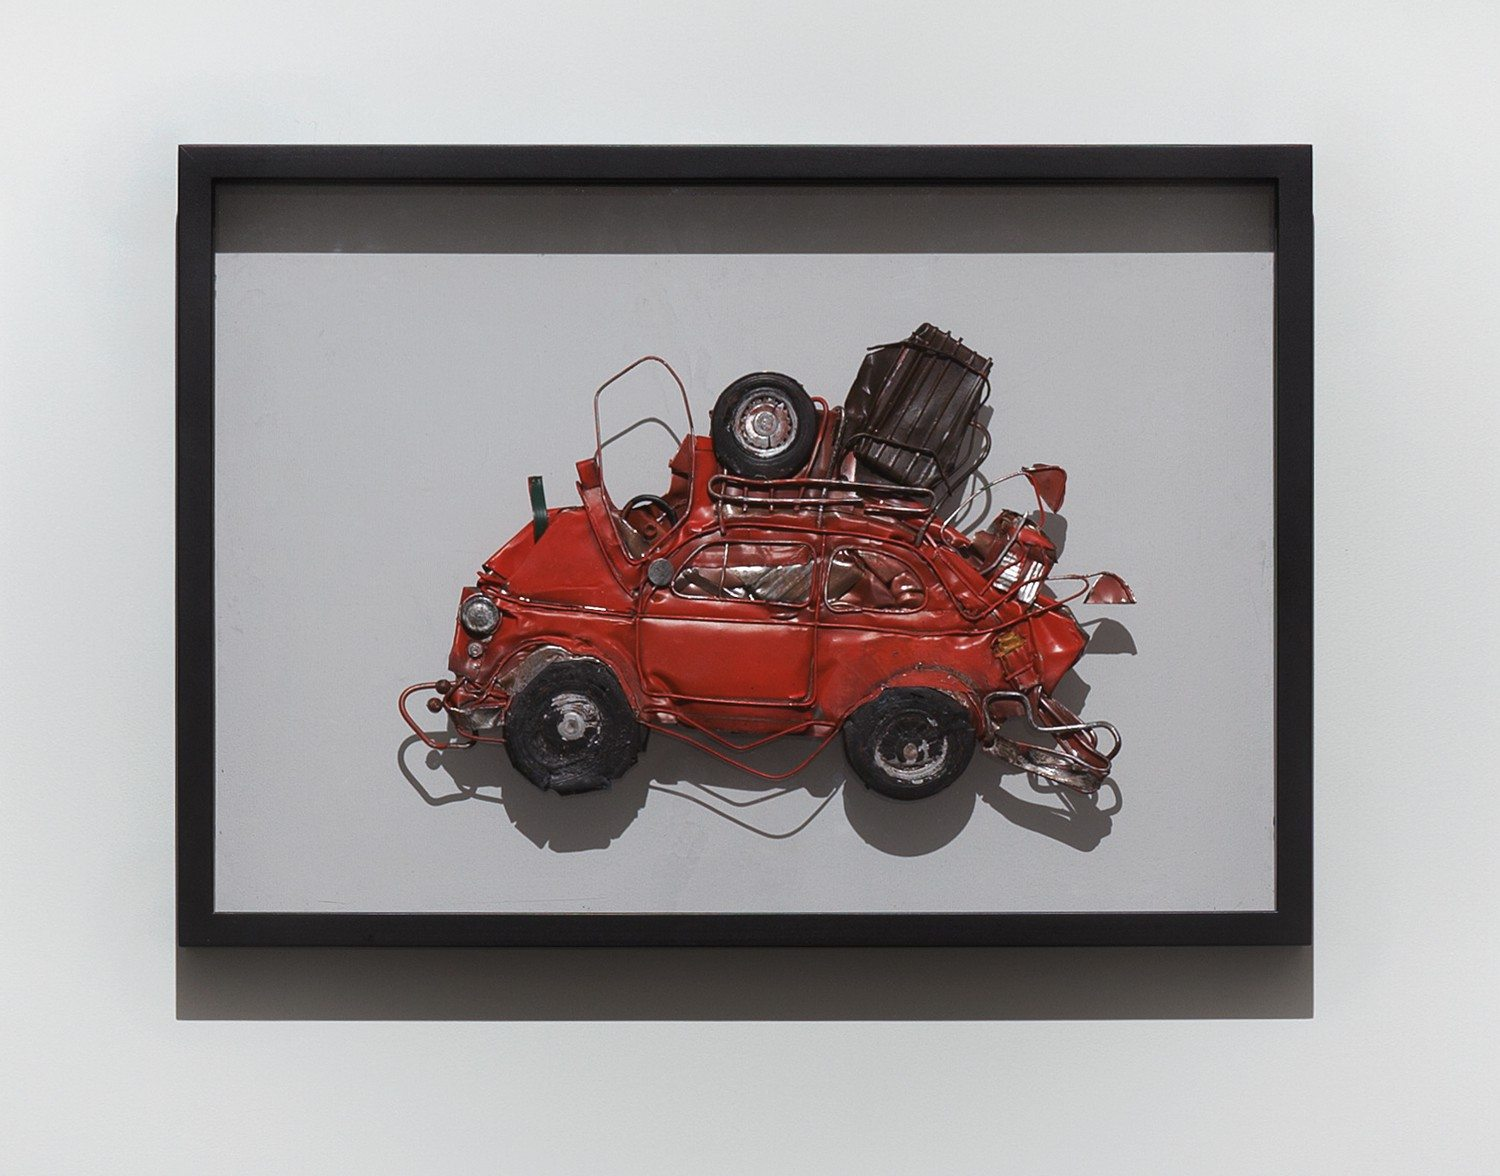 Courtesy photoWorks of art by Ron Arad are among the offerings at FOG Design & Art at Fort Mason this weekend.